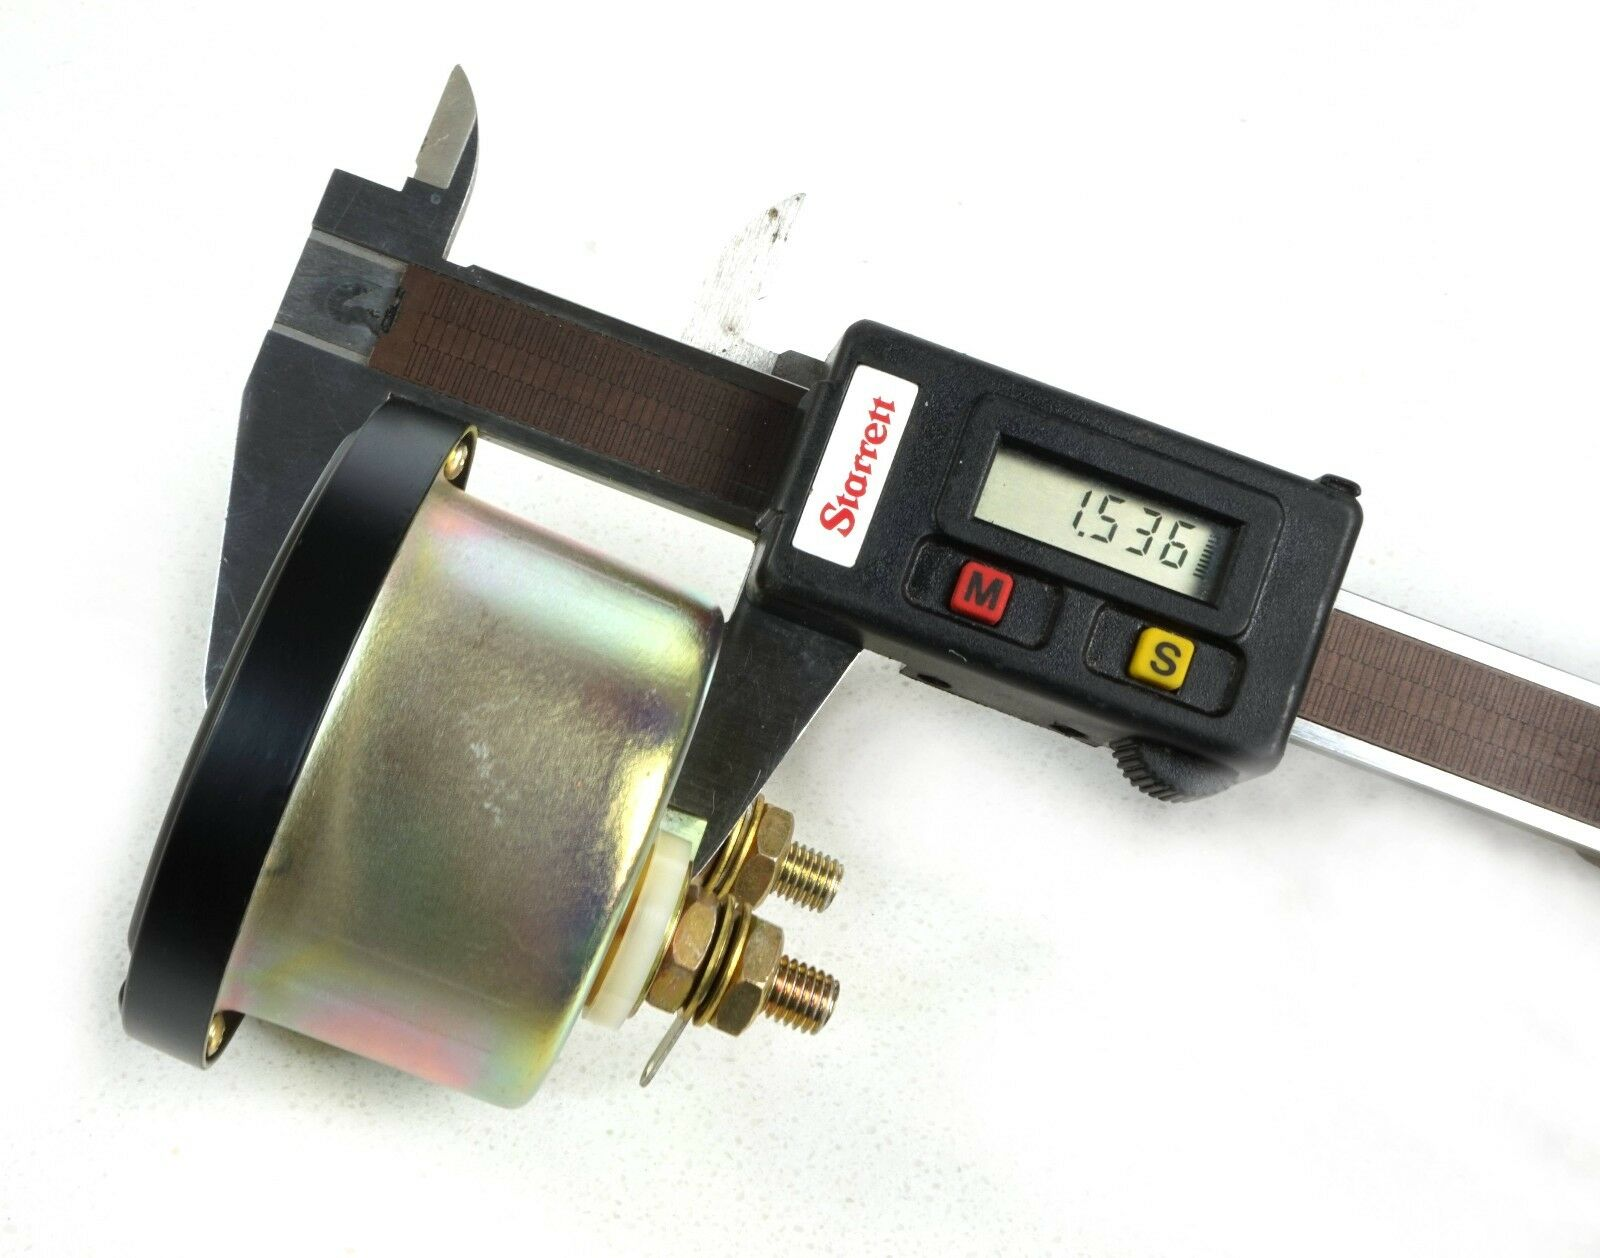 Phaostron 621 Electrical Tachometer Indicator fits 3KW